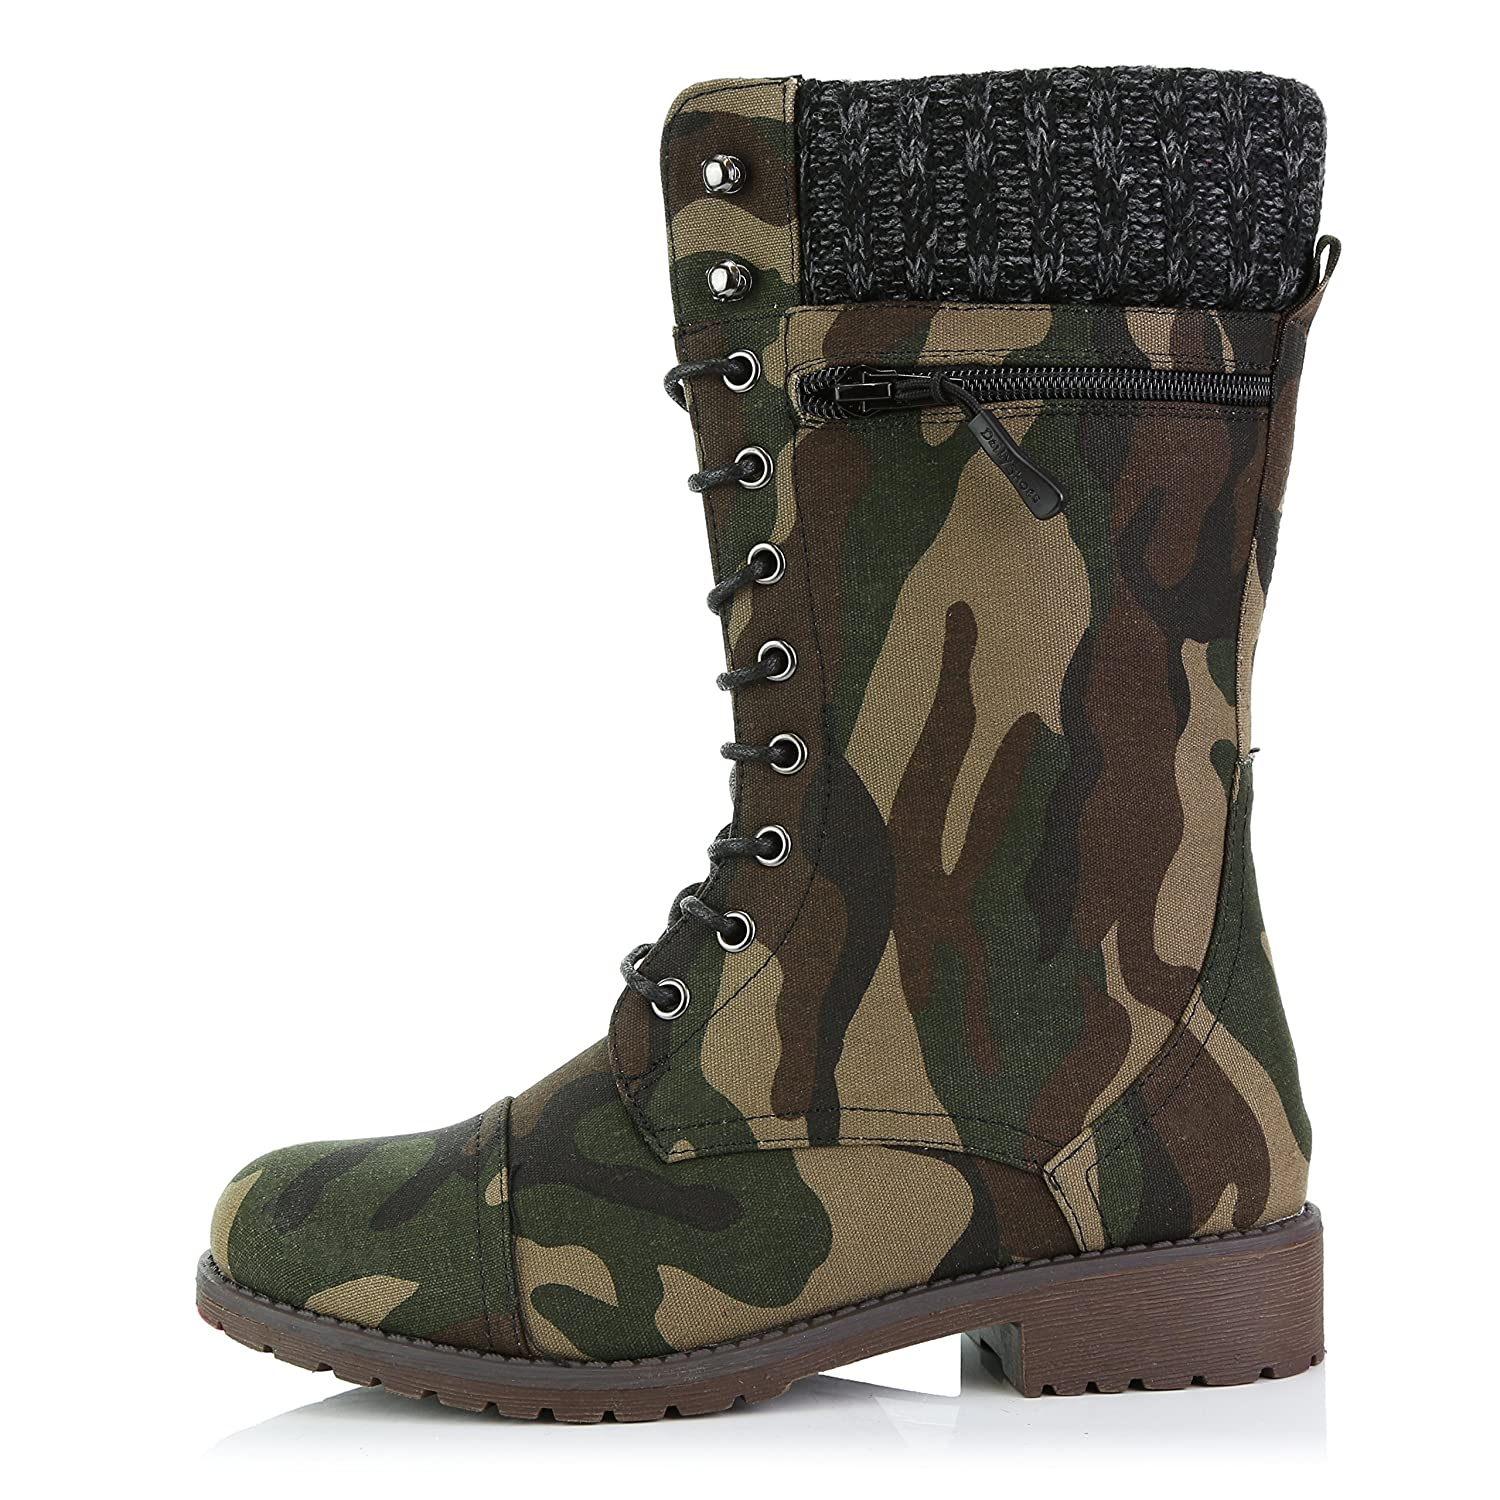 DailyShoes Women's Combat Style up Ankle Bootie Quilted Military Knit Credit Card Knife Money Wallet Pocket Boots B0155NB36G 7 B(M) US|Camouflage Cv